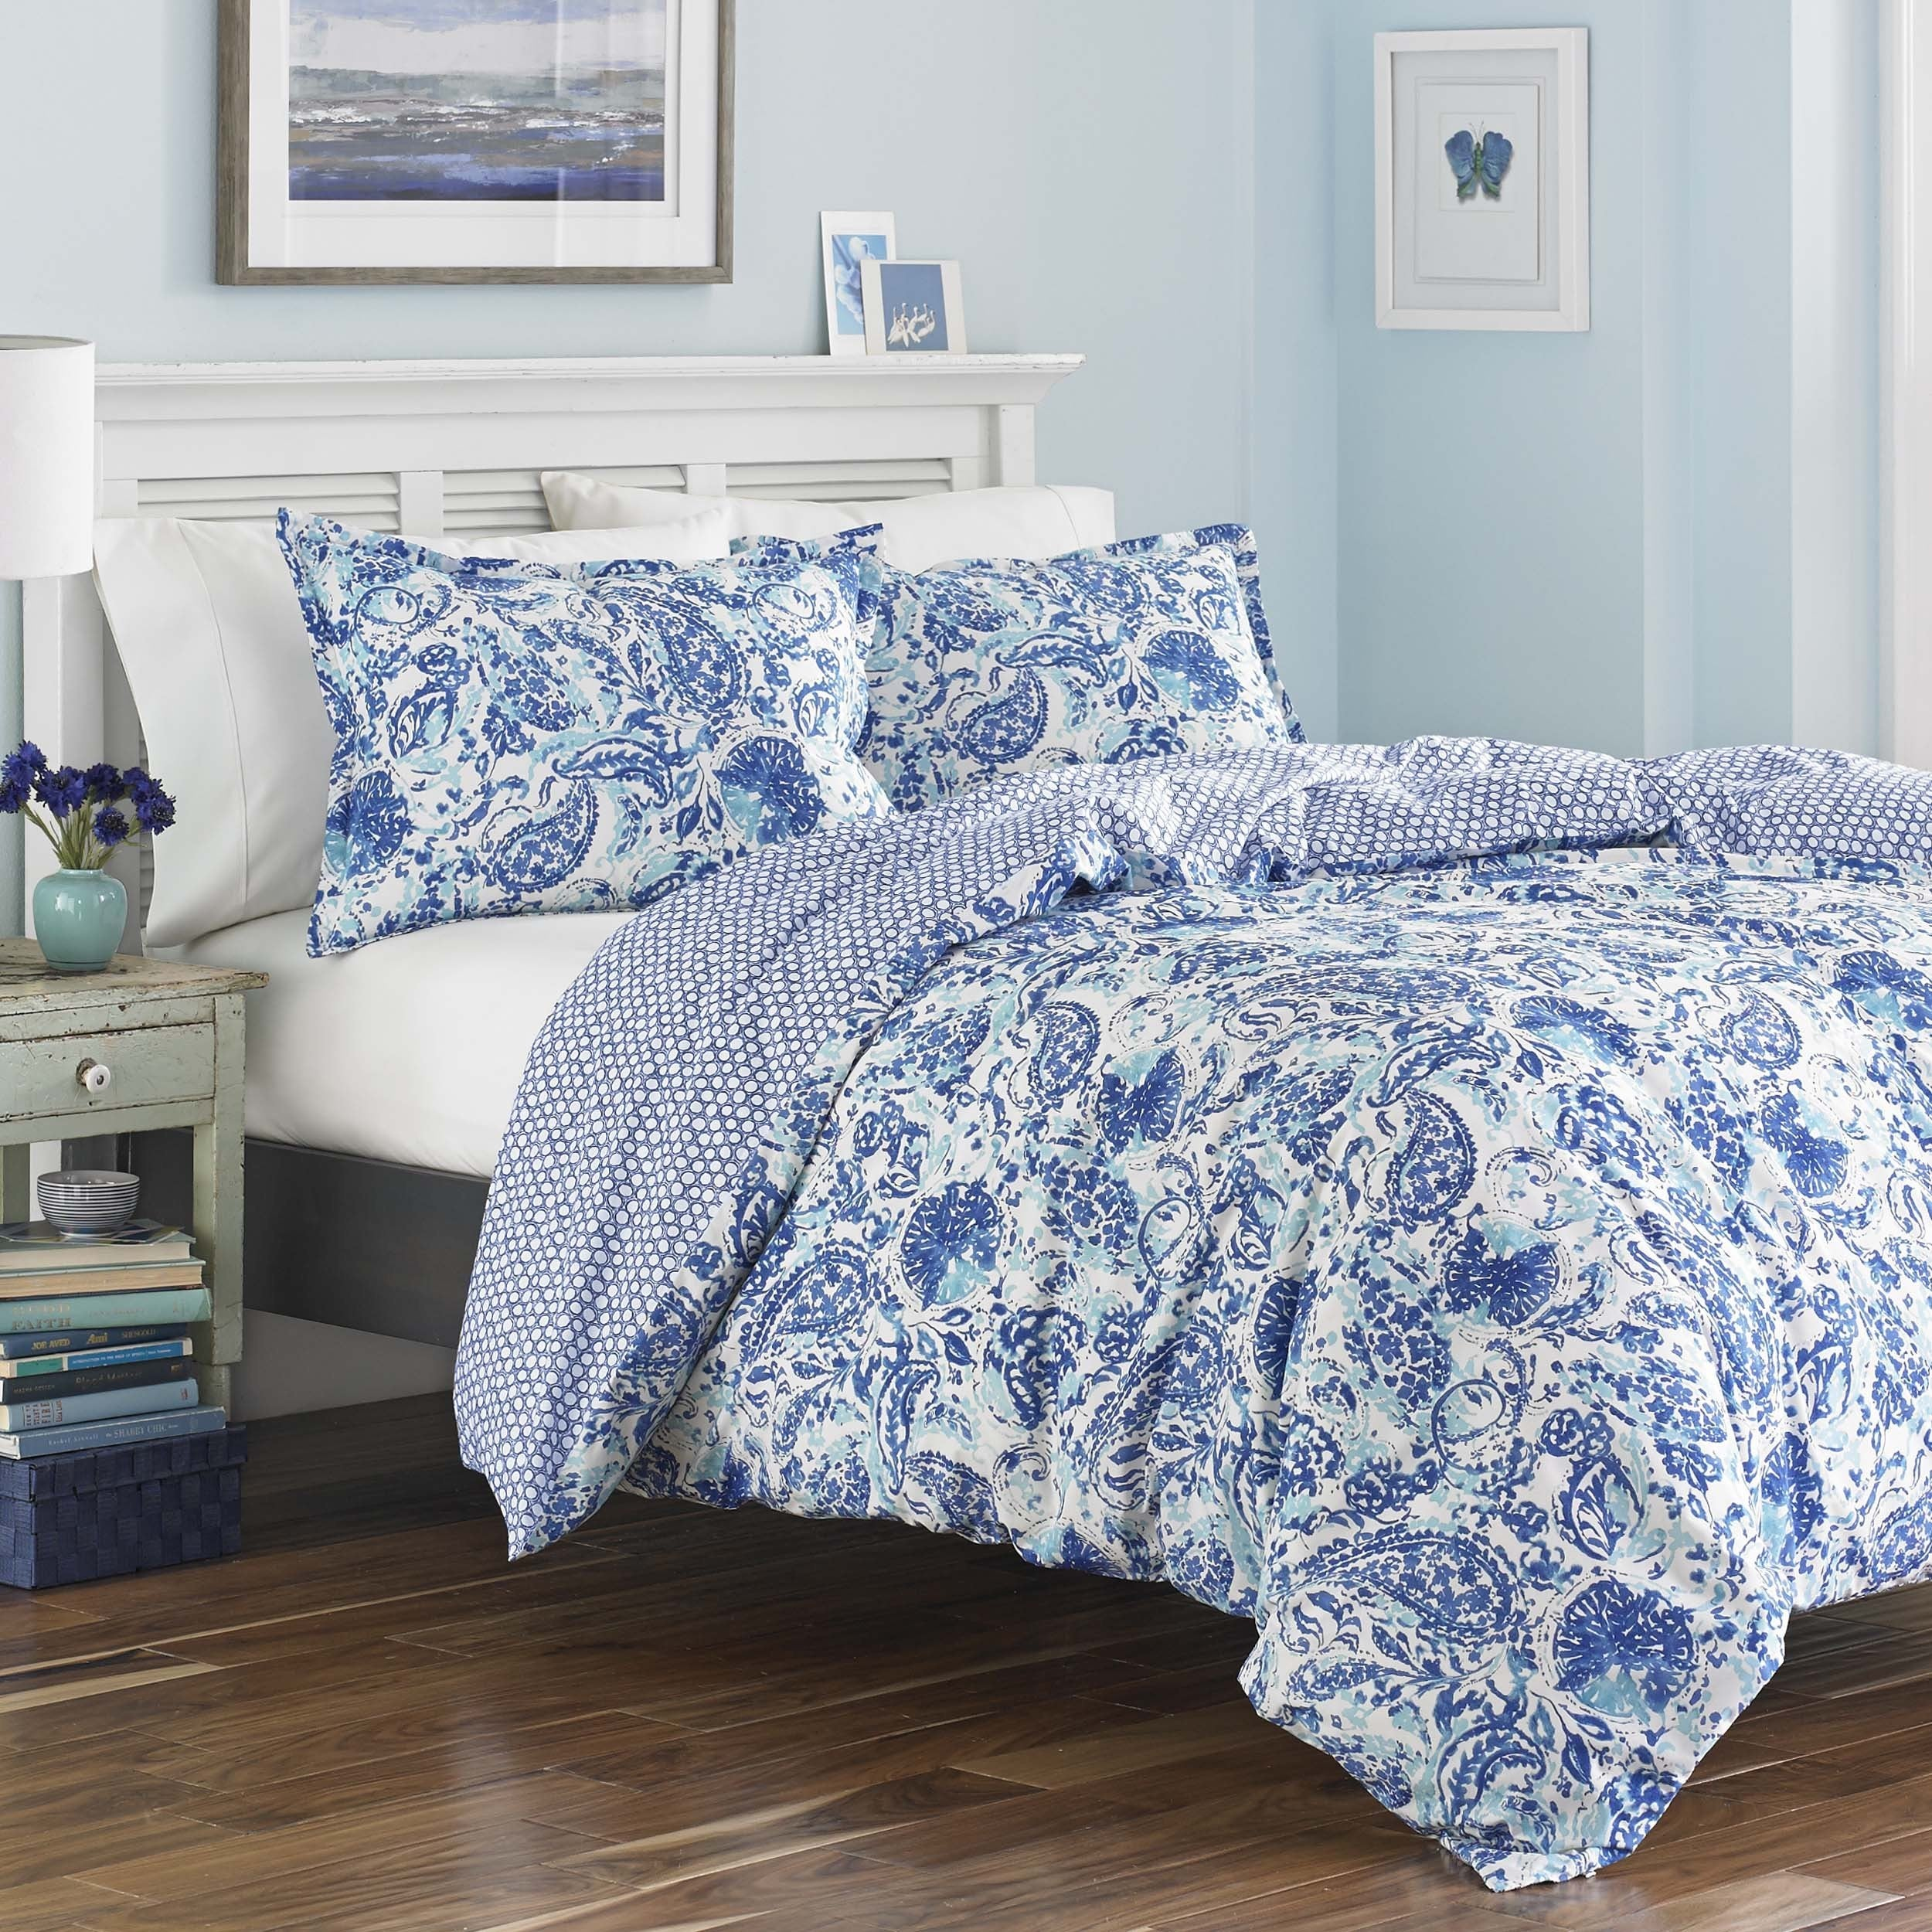 Poppy Fritz Brooke Cobalt And White Paisley Cotton Duvet Cover Set Free Shipping Today 18986630